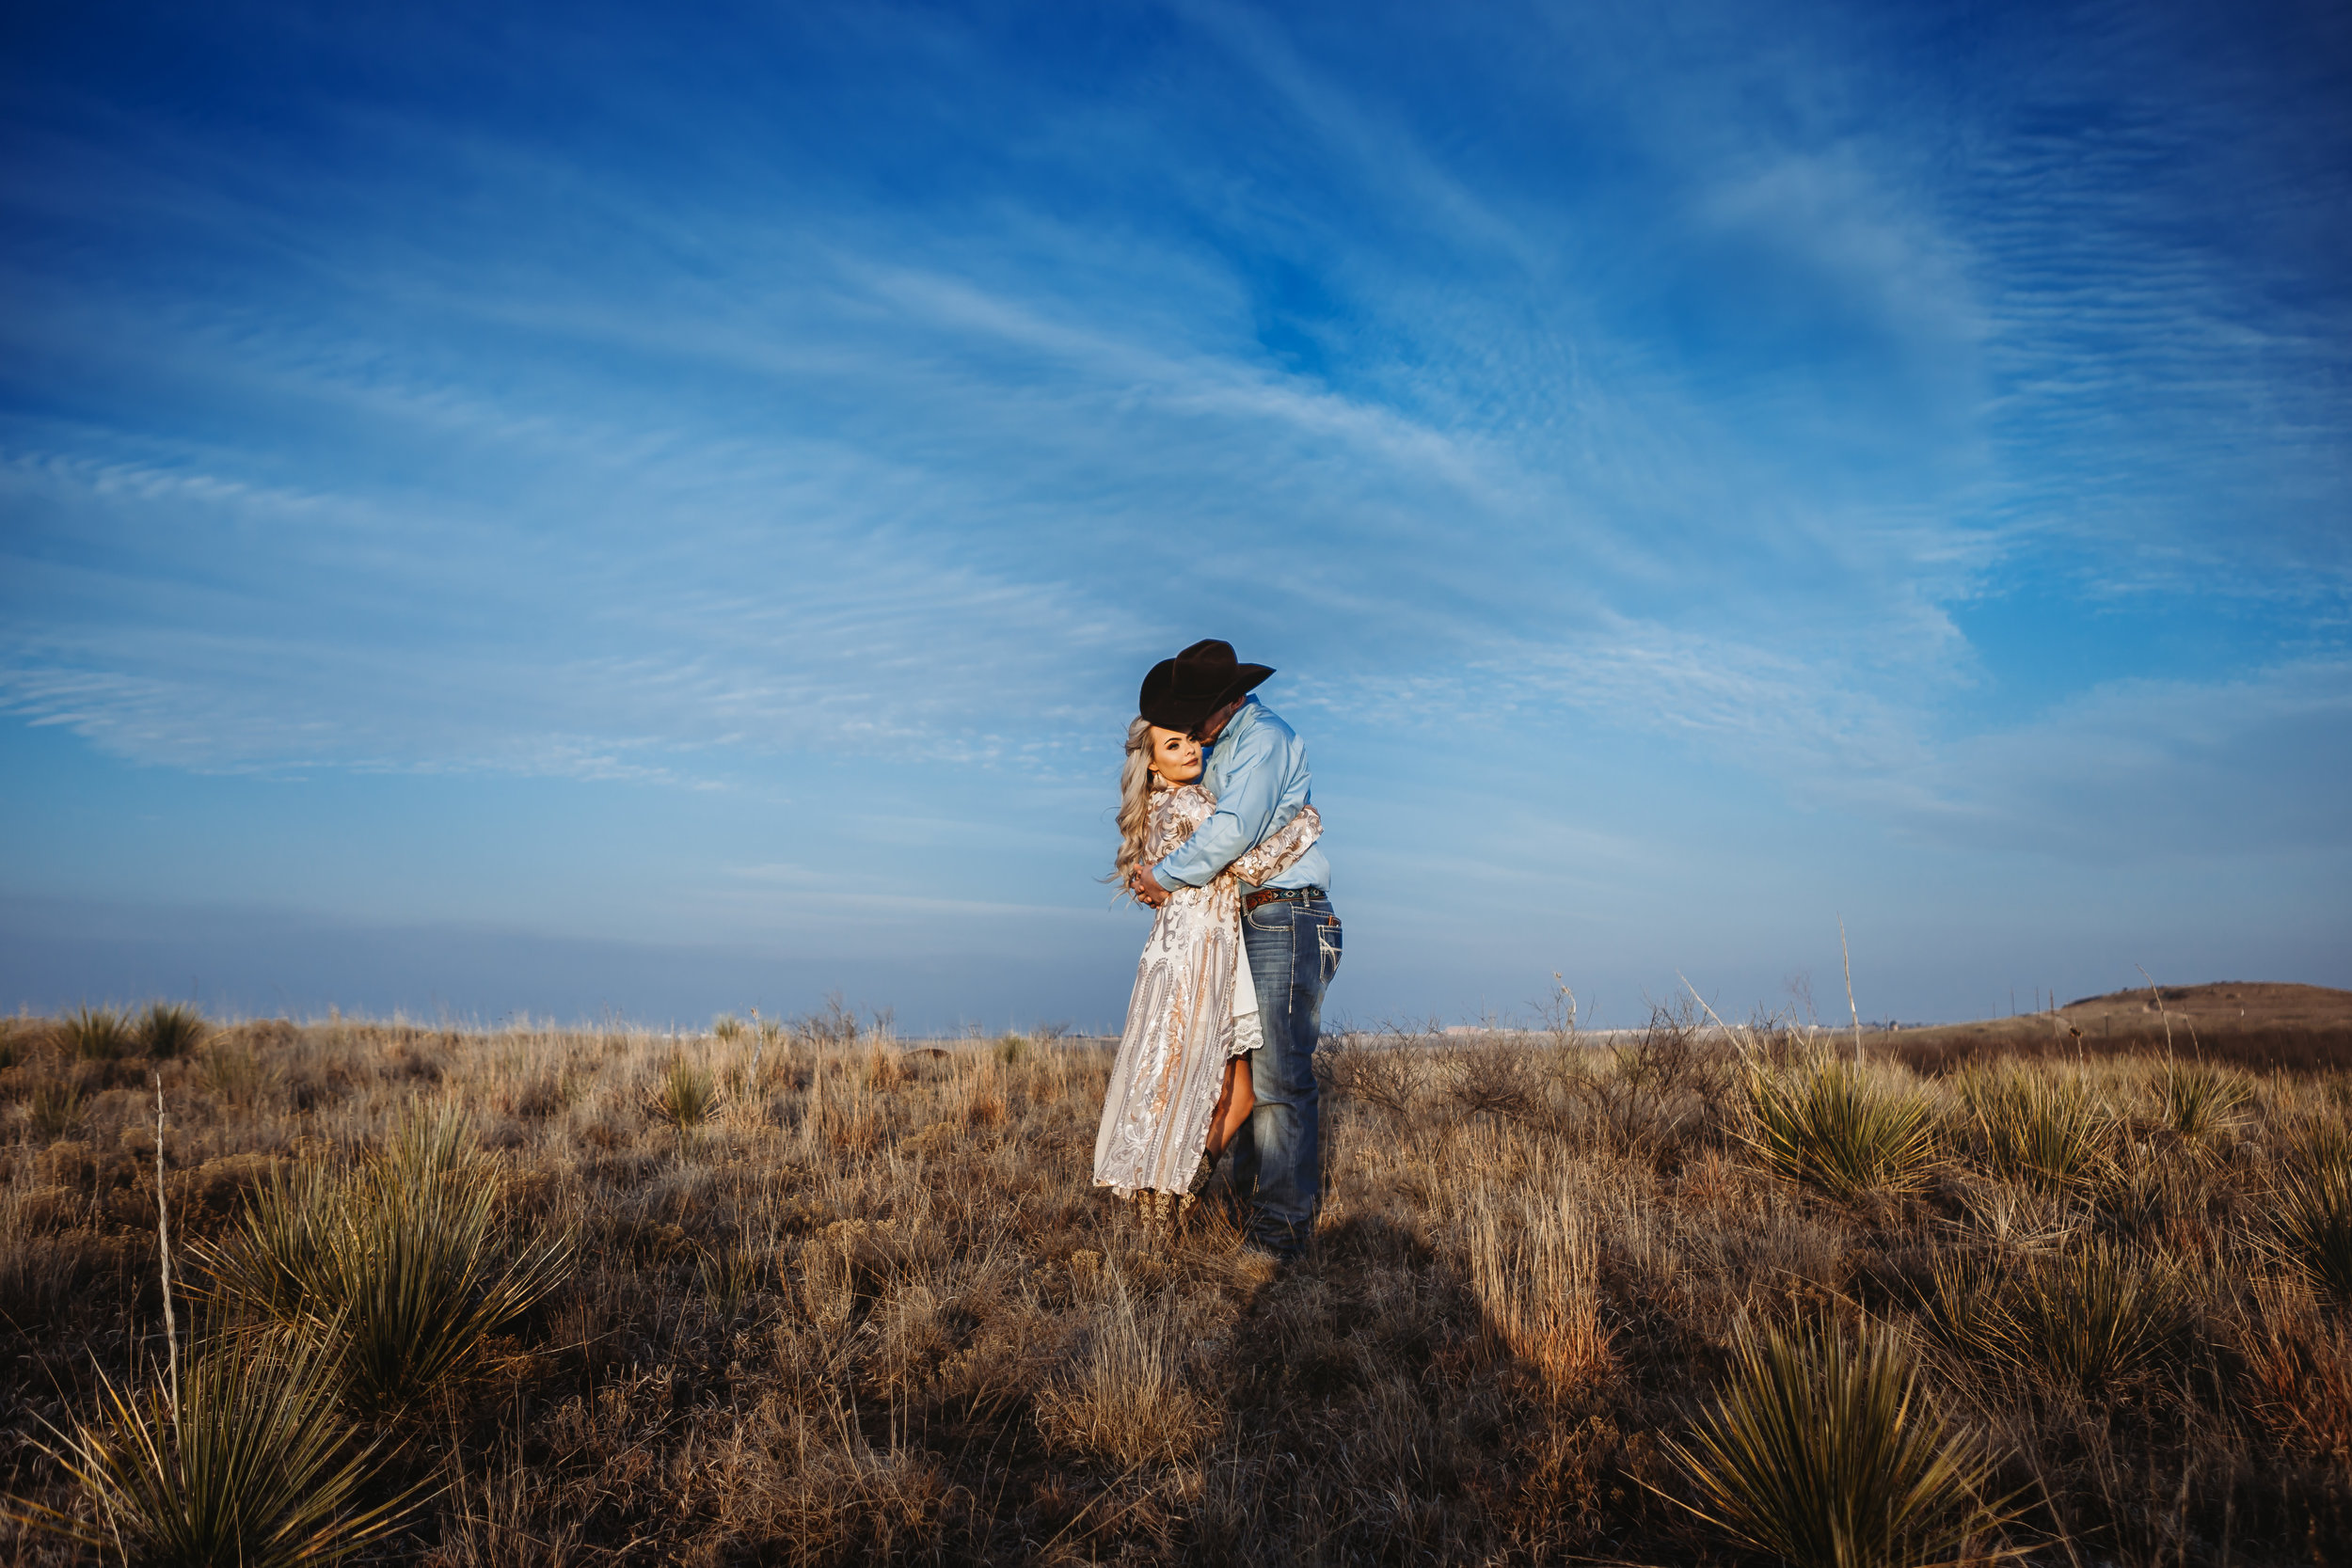 Engaged couple kissing on top of a plateau like they are the only ones on the earth #engagementphotos #engaged #personality #amarillotexas #engagementphotographer #lifestylephotos #amarillophotographer #locationchoice #texasengagementphotos #engagment #tealawardphotography #westernstyle